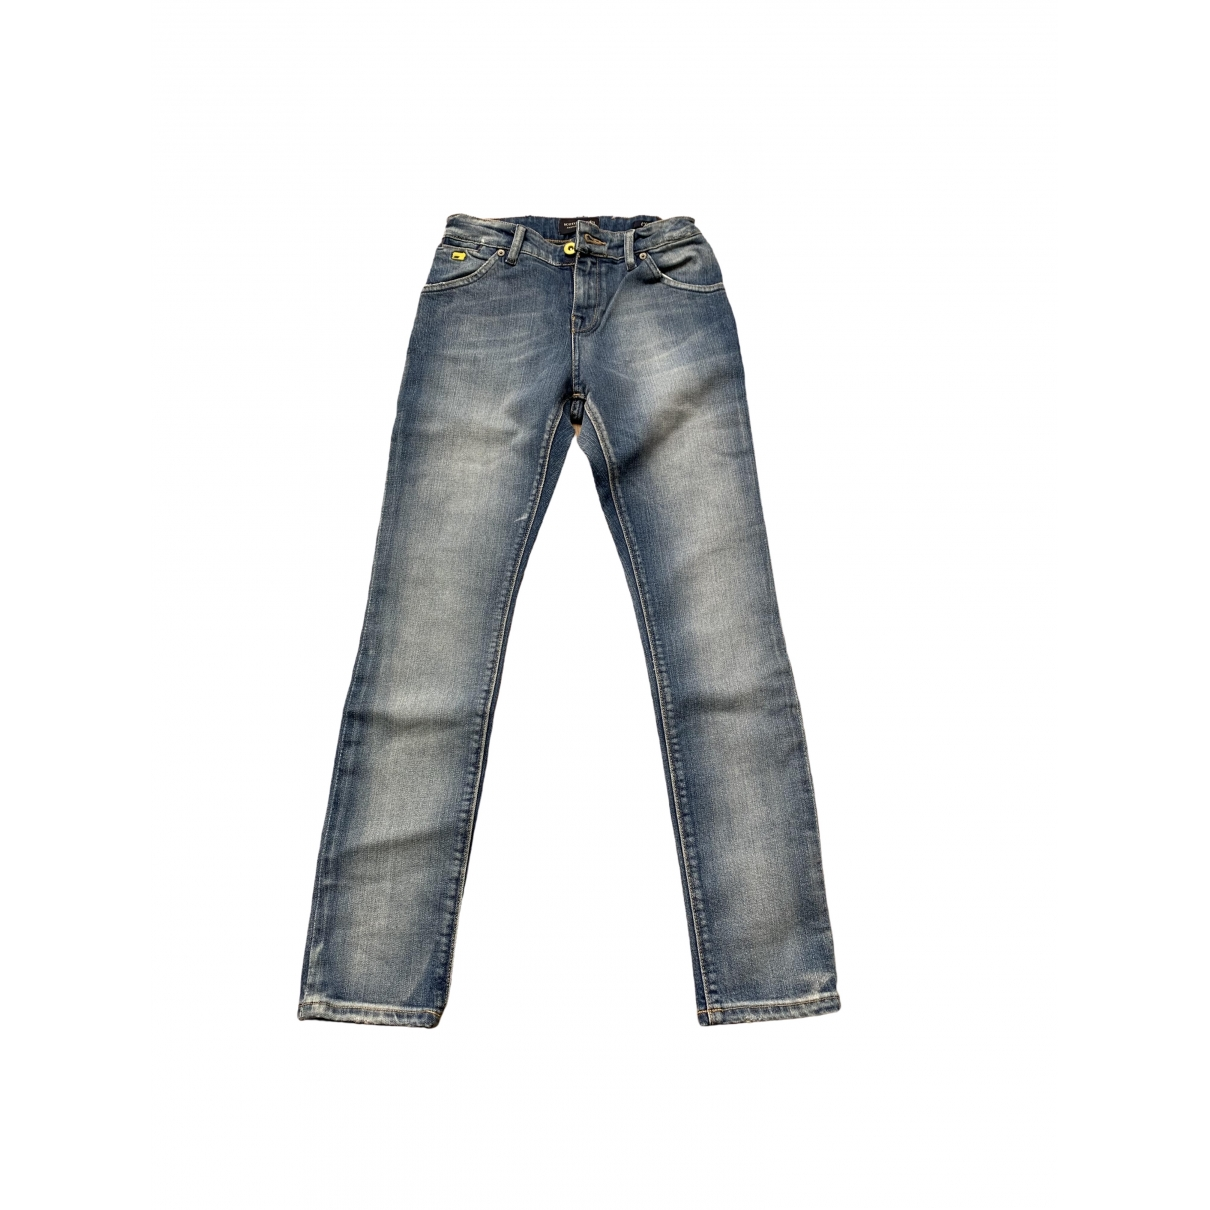 Scotch & Soda \N Blue Denim - Jeans Trousers for Kids 10 years - up to 142cm FR